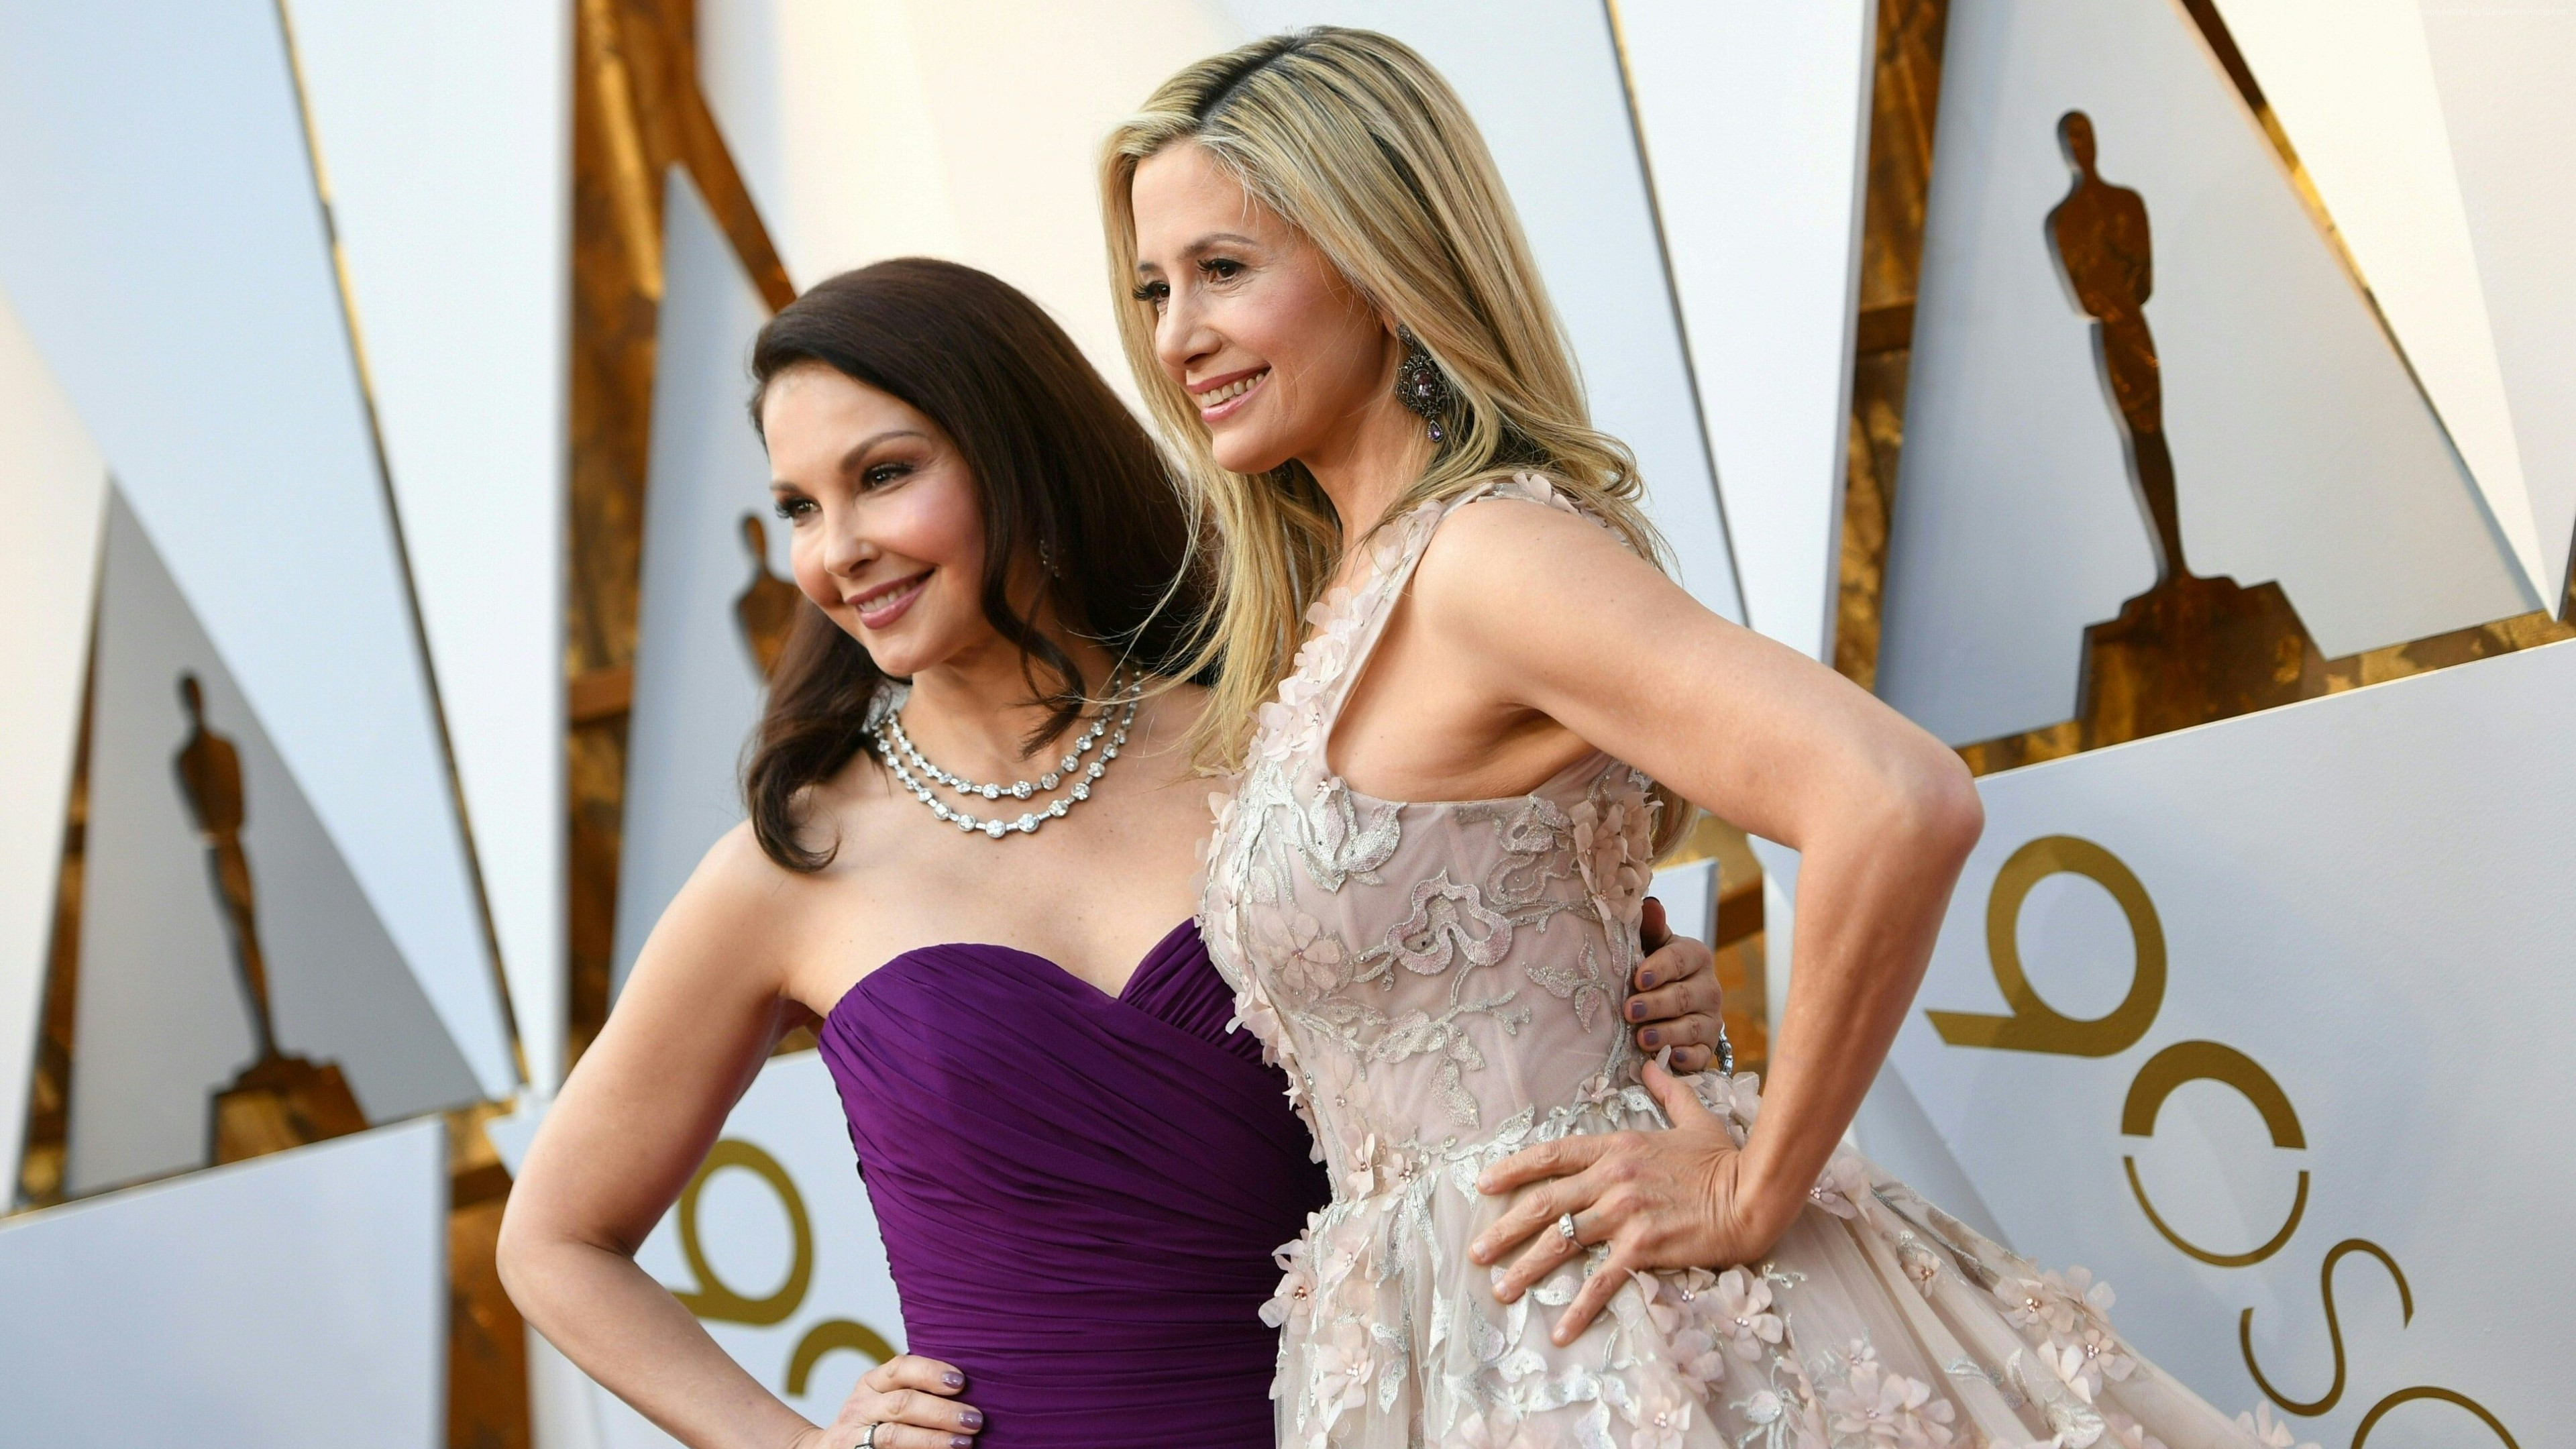 Wallpaper Ashley Judd, Mira Sorvino, Oscar 2018, 4k, Girls